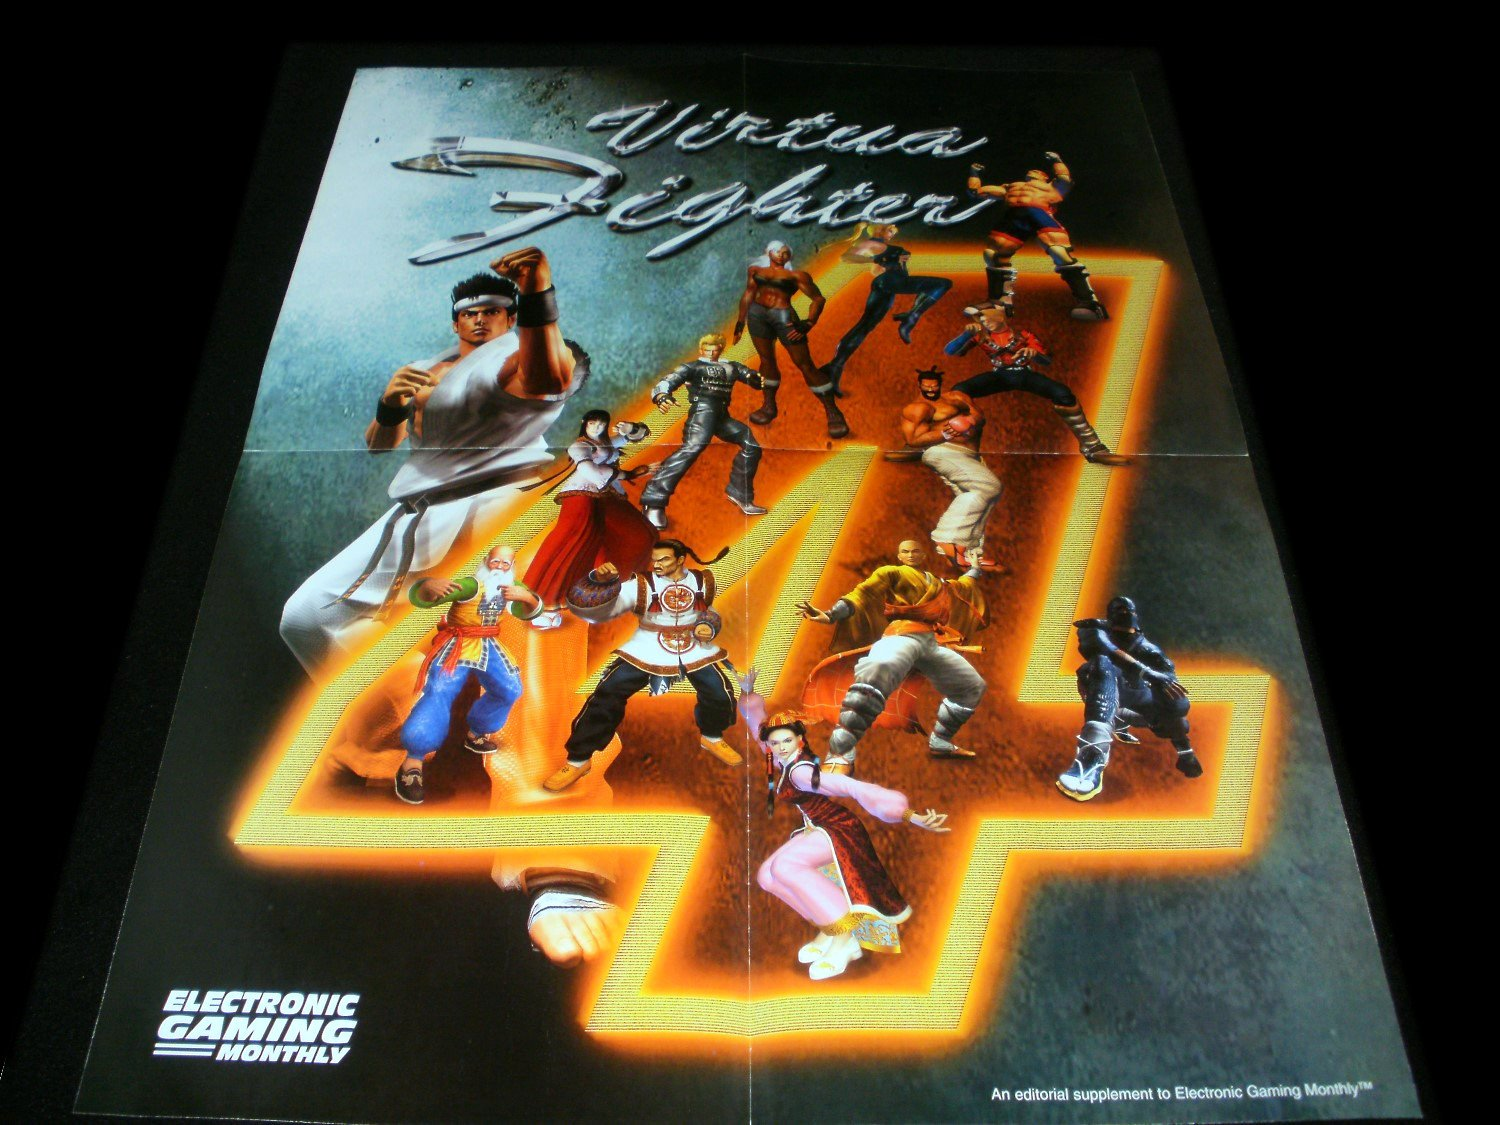 Virtua Fighter 4 Poster - Electronic Gaming Monthly 2002